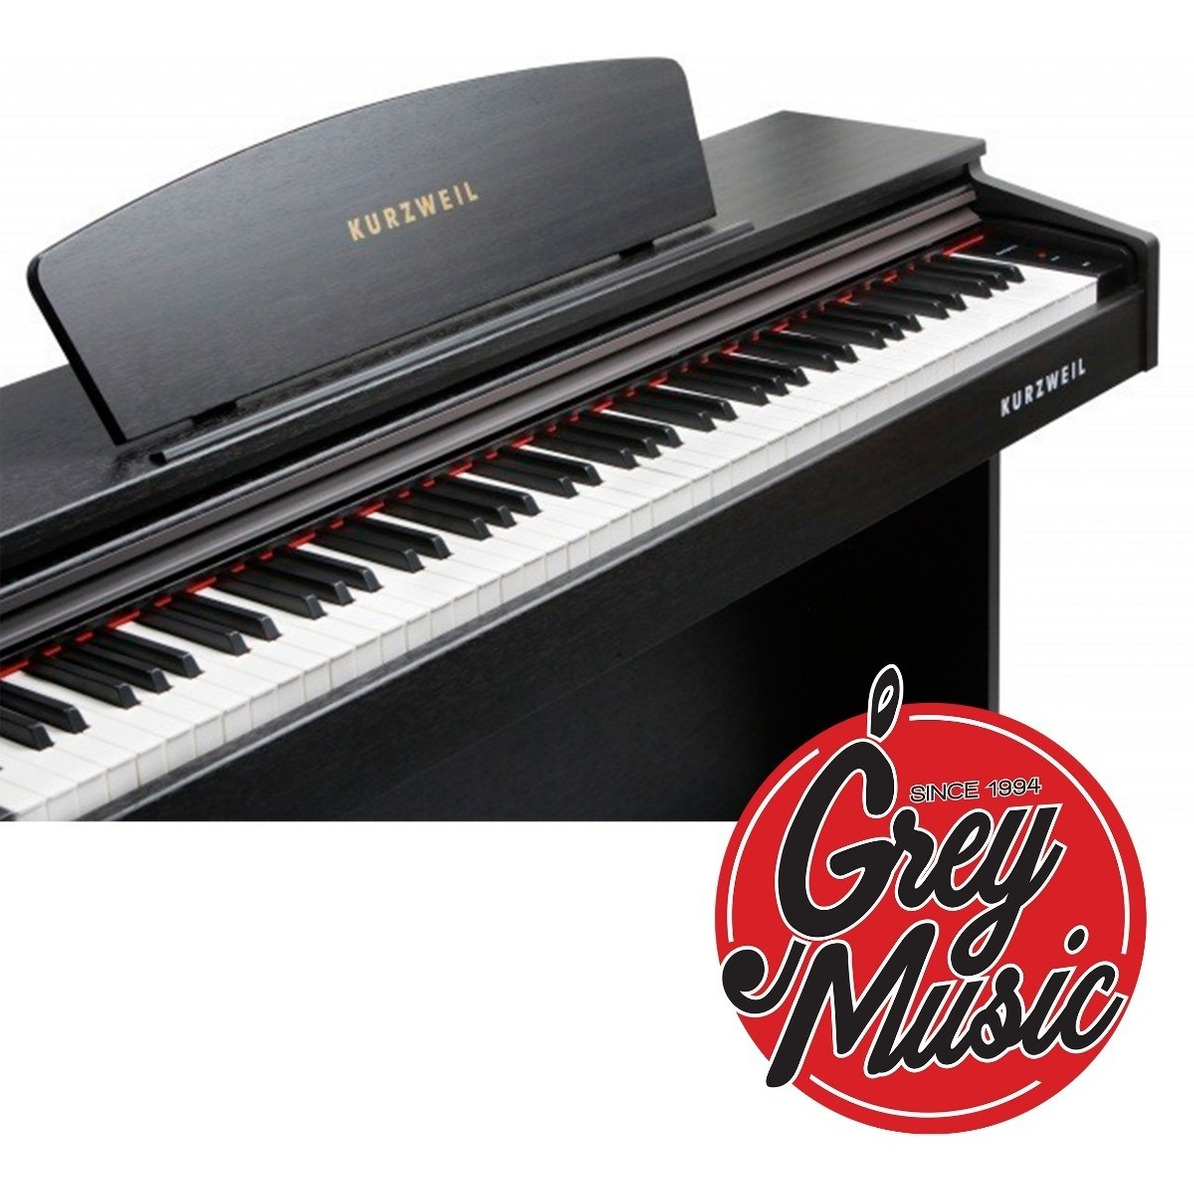 Piano Digital Kurzweil M90sr 88 Notas 16 Demos - 64 Voces